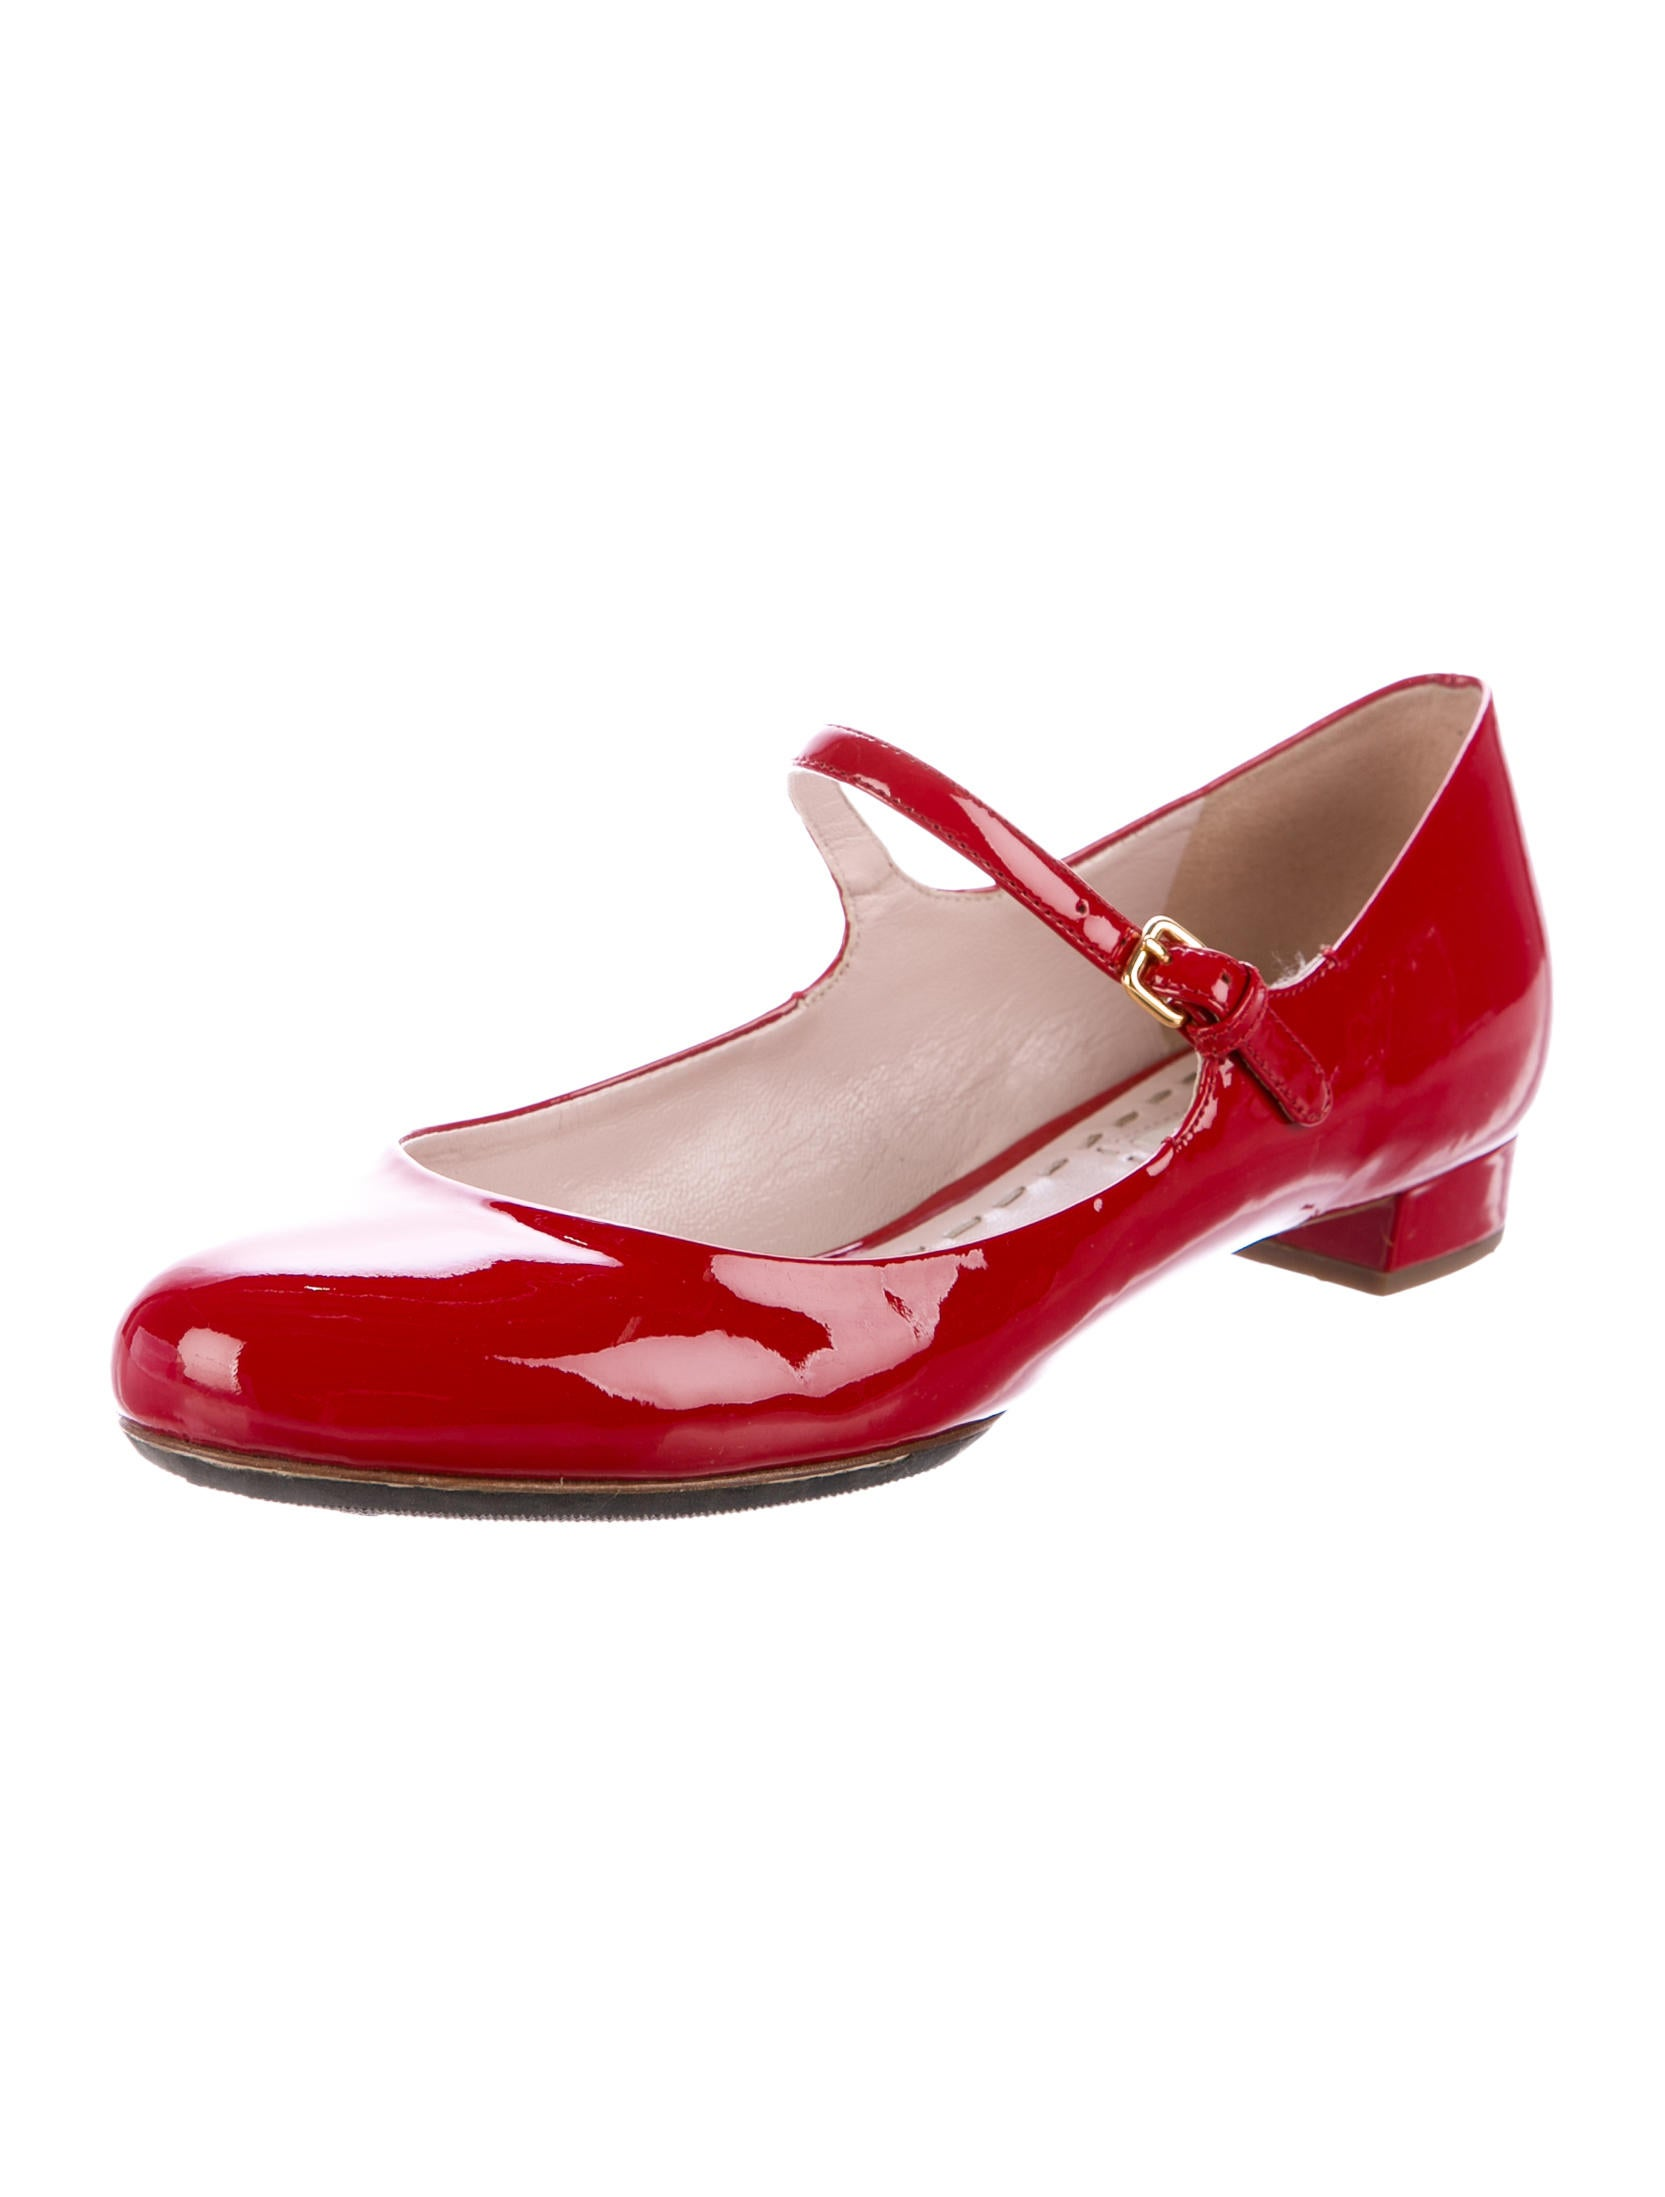 Red Patent Leather Mary Jane Shoes